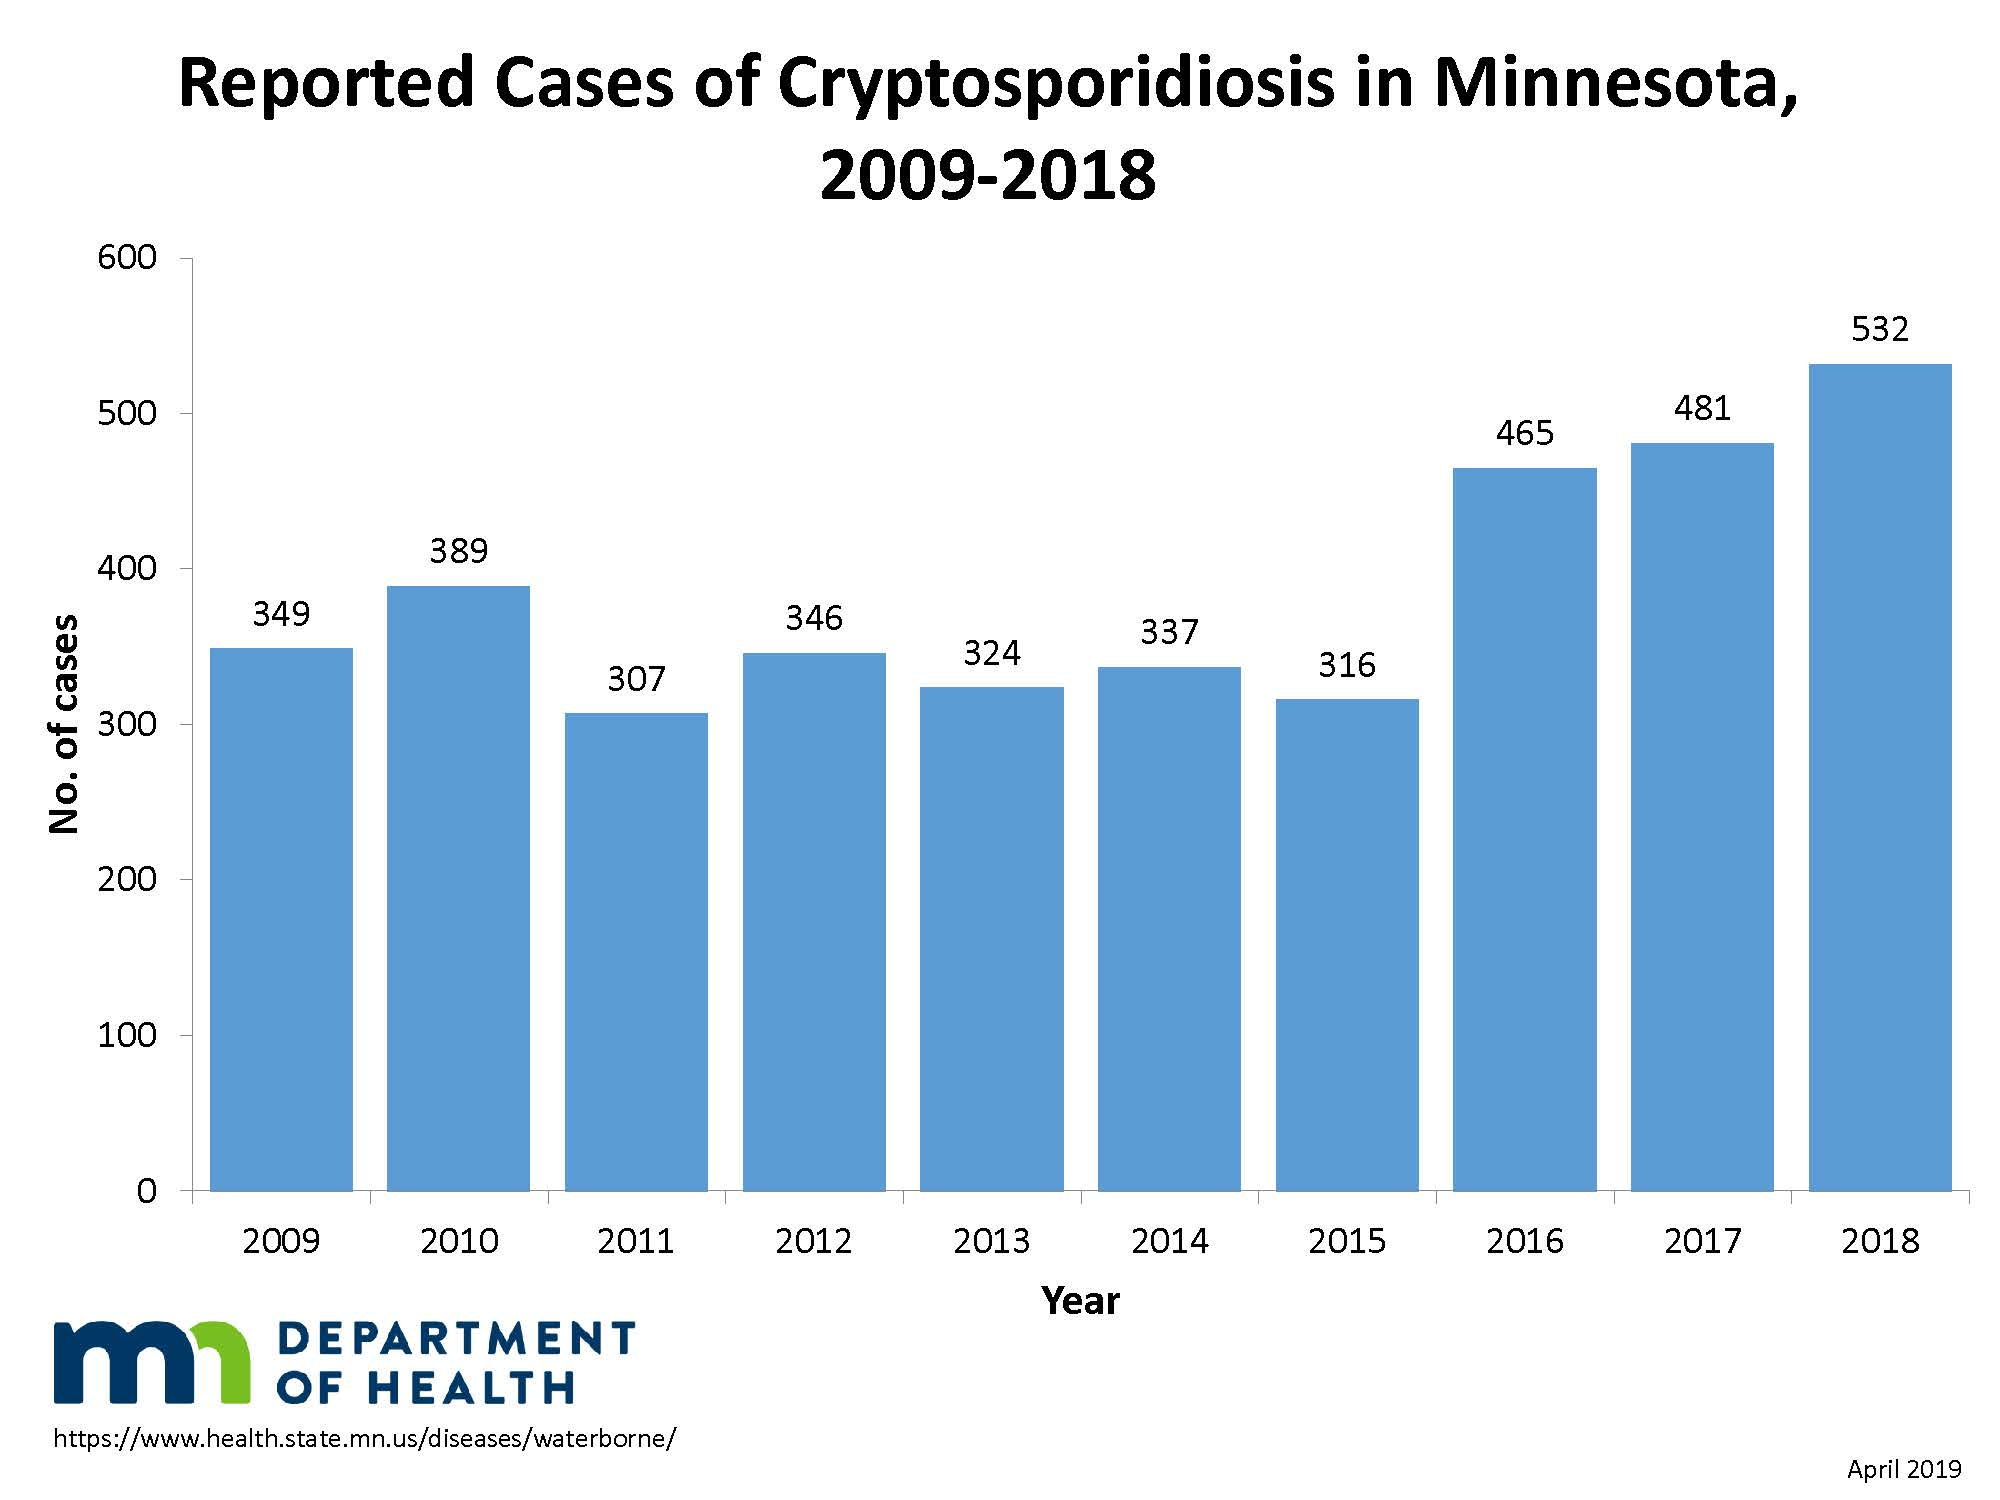 Reported crypto cases in Minnesota, 2009-2018